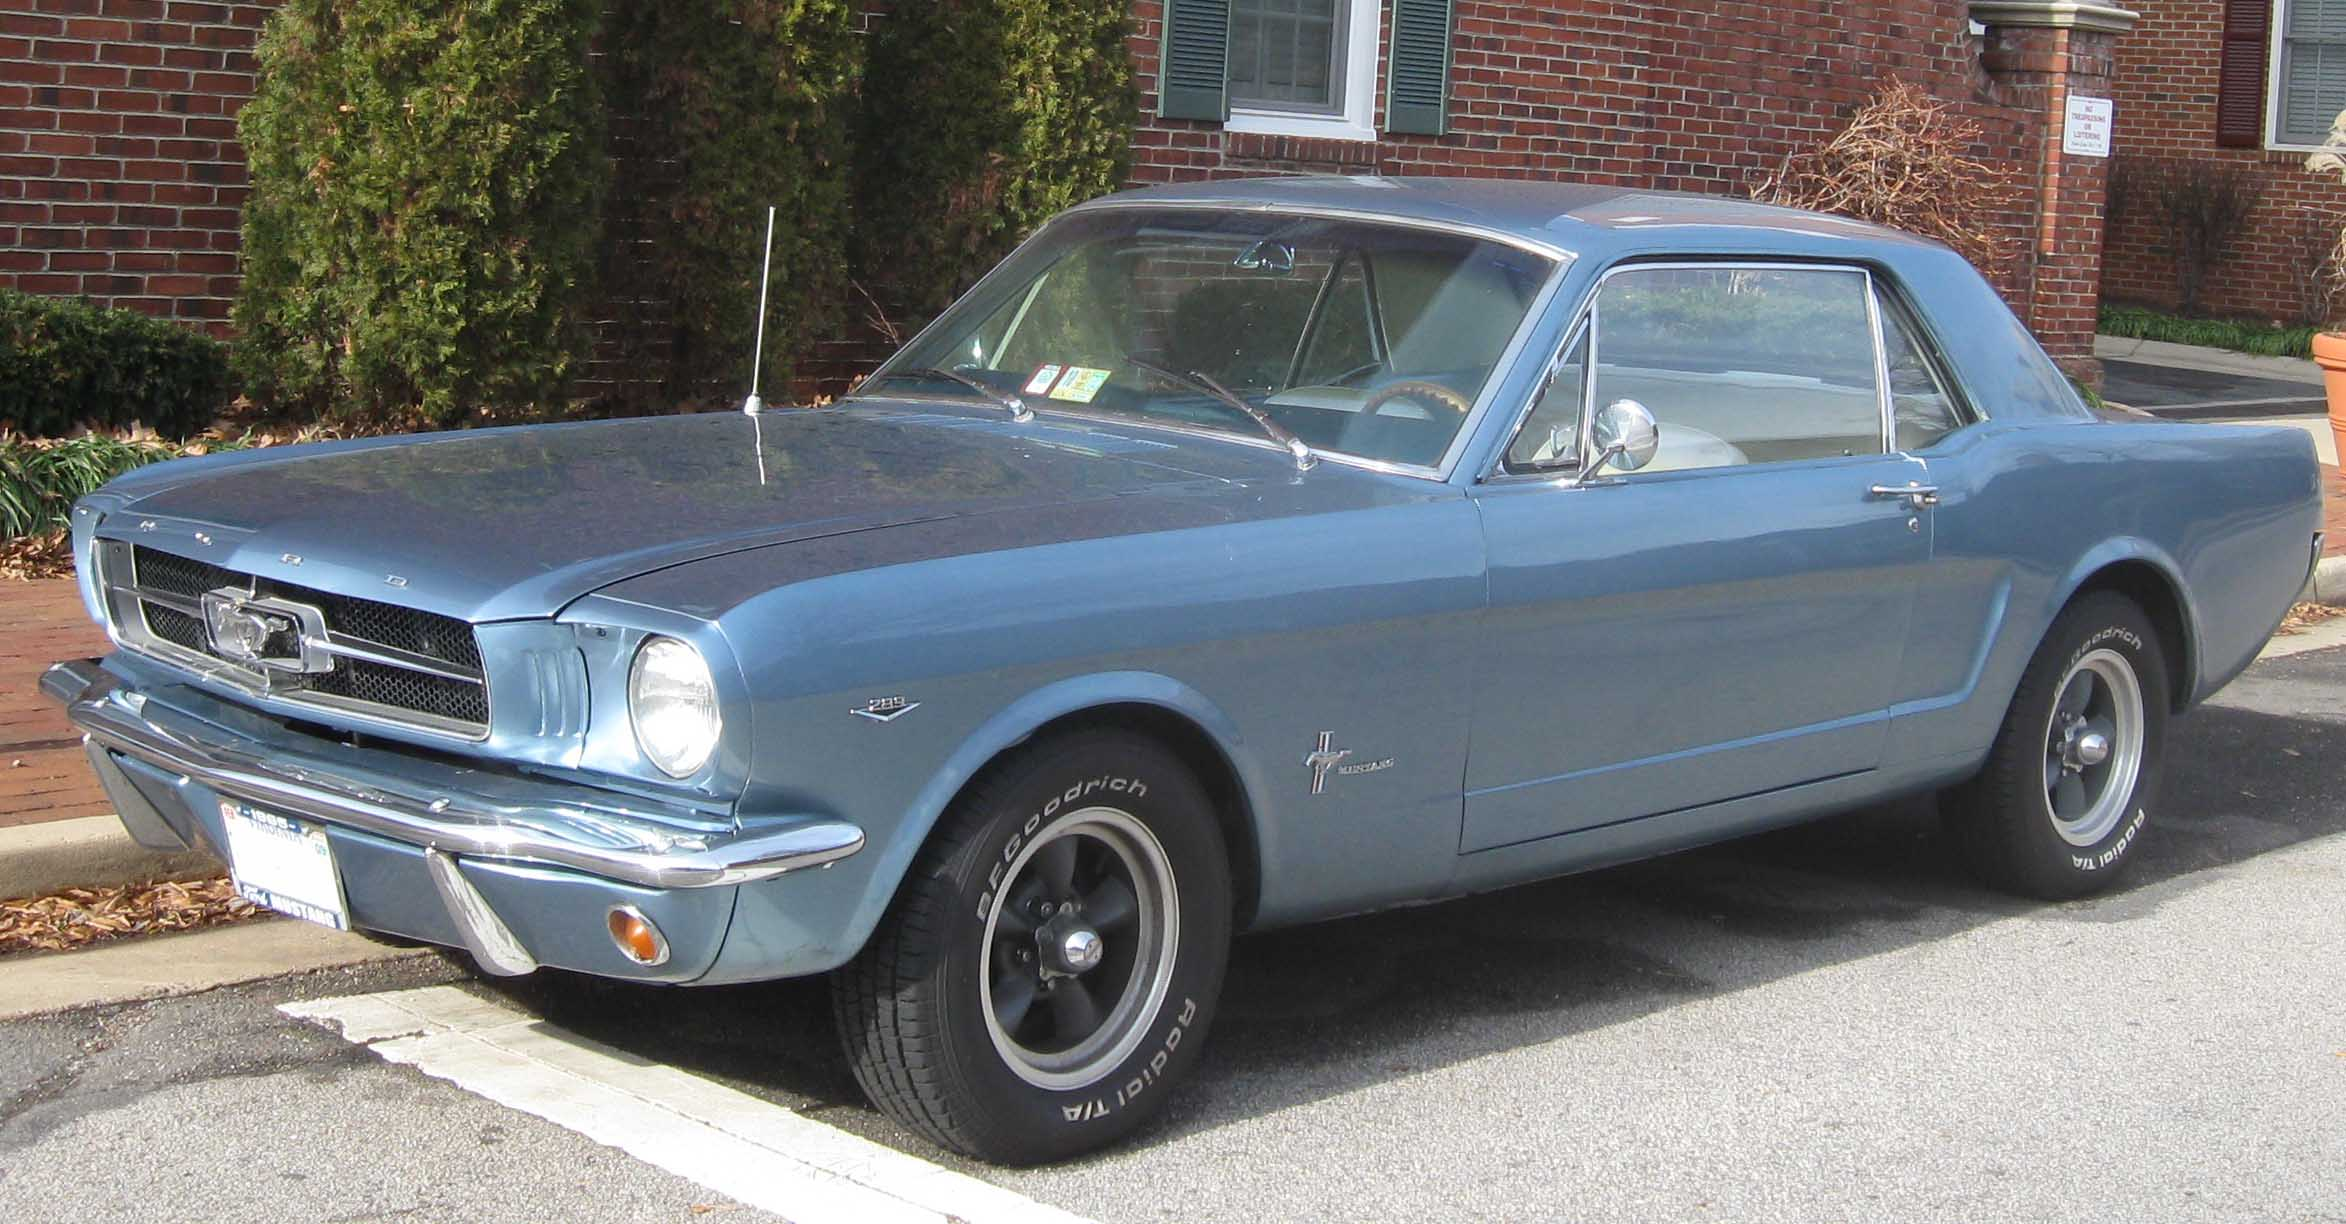 Ford Mustang Fastback 1965 Has Opened